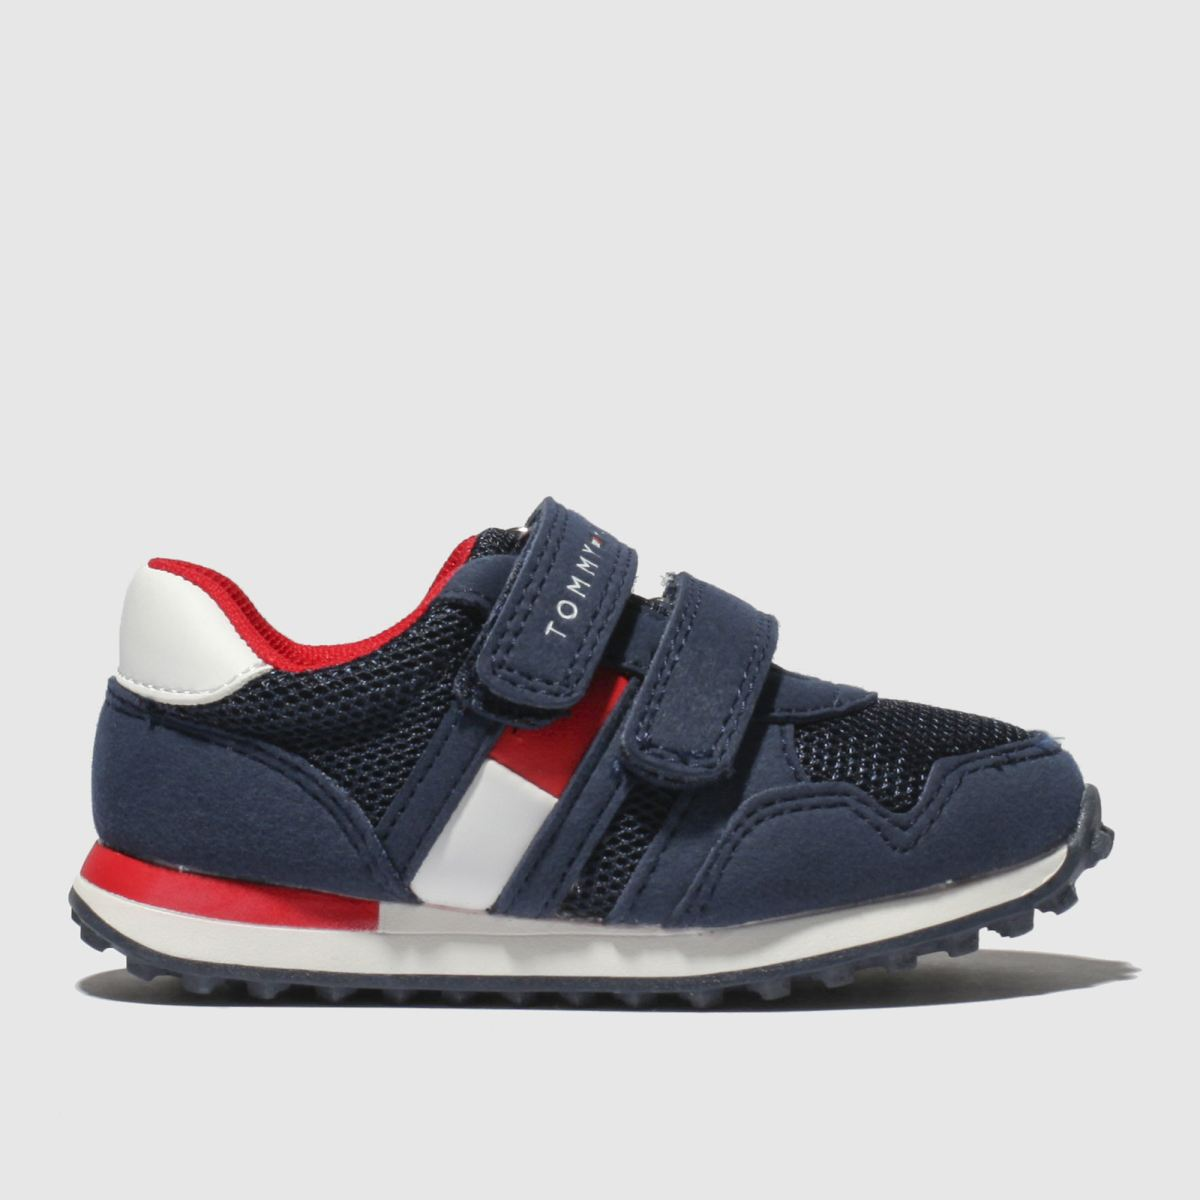 Tommy Hilfiger Navy & Red Flag Velcro Sneaker Trainers Toddler